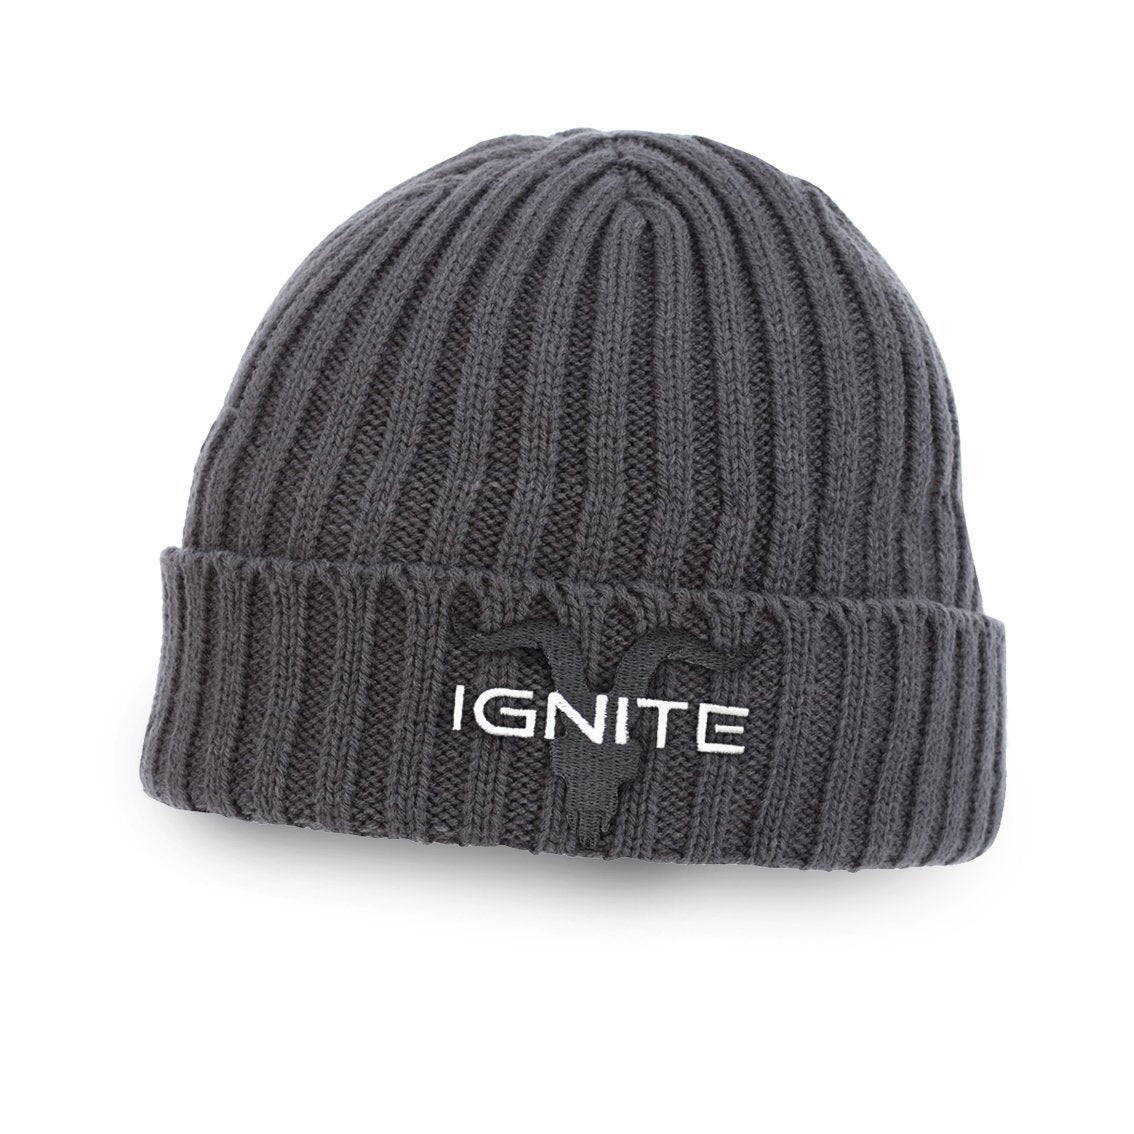 Ignite Premium Collection Classic Charcoal Beanie - ignite-merch